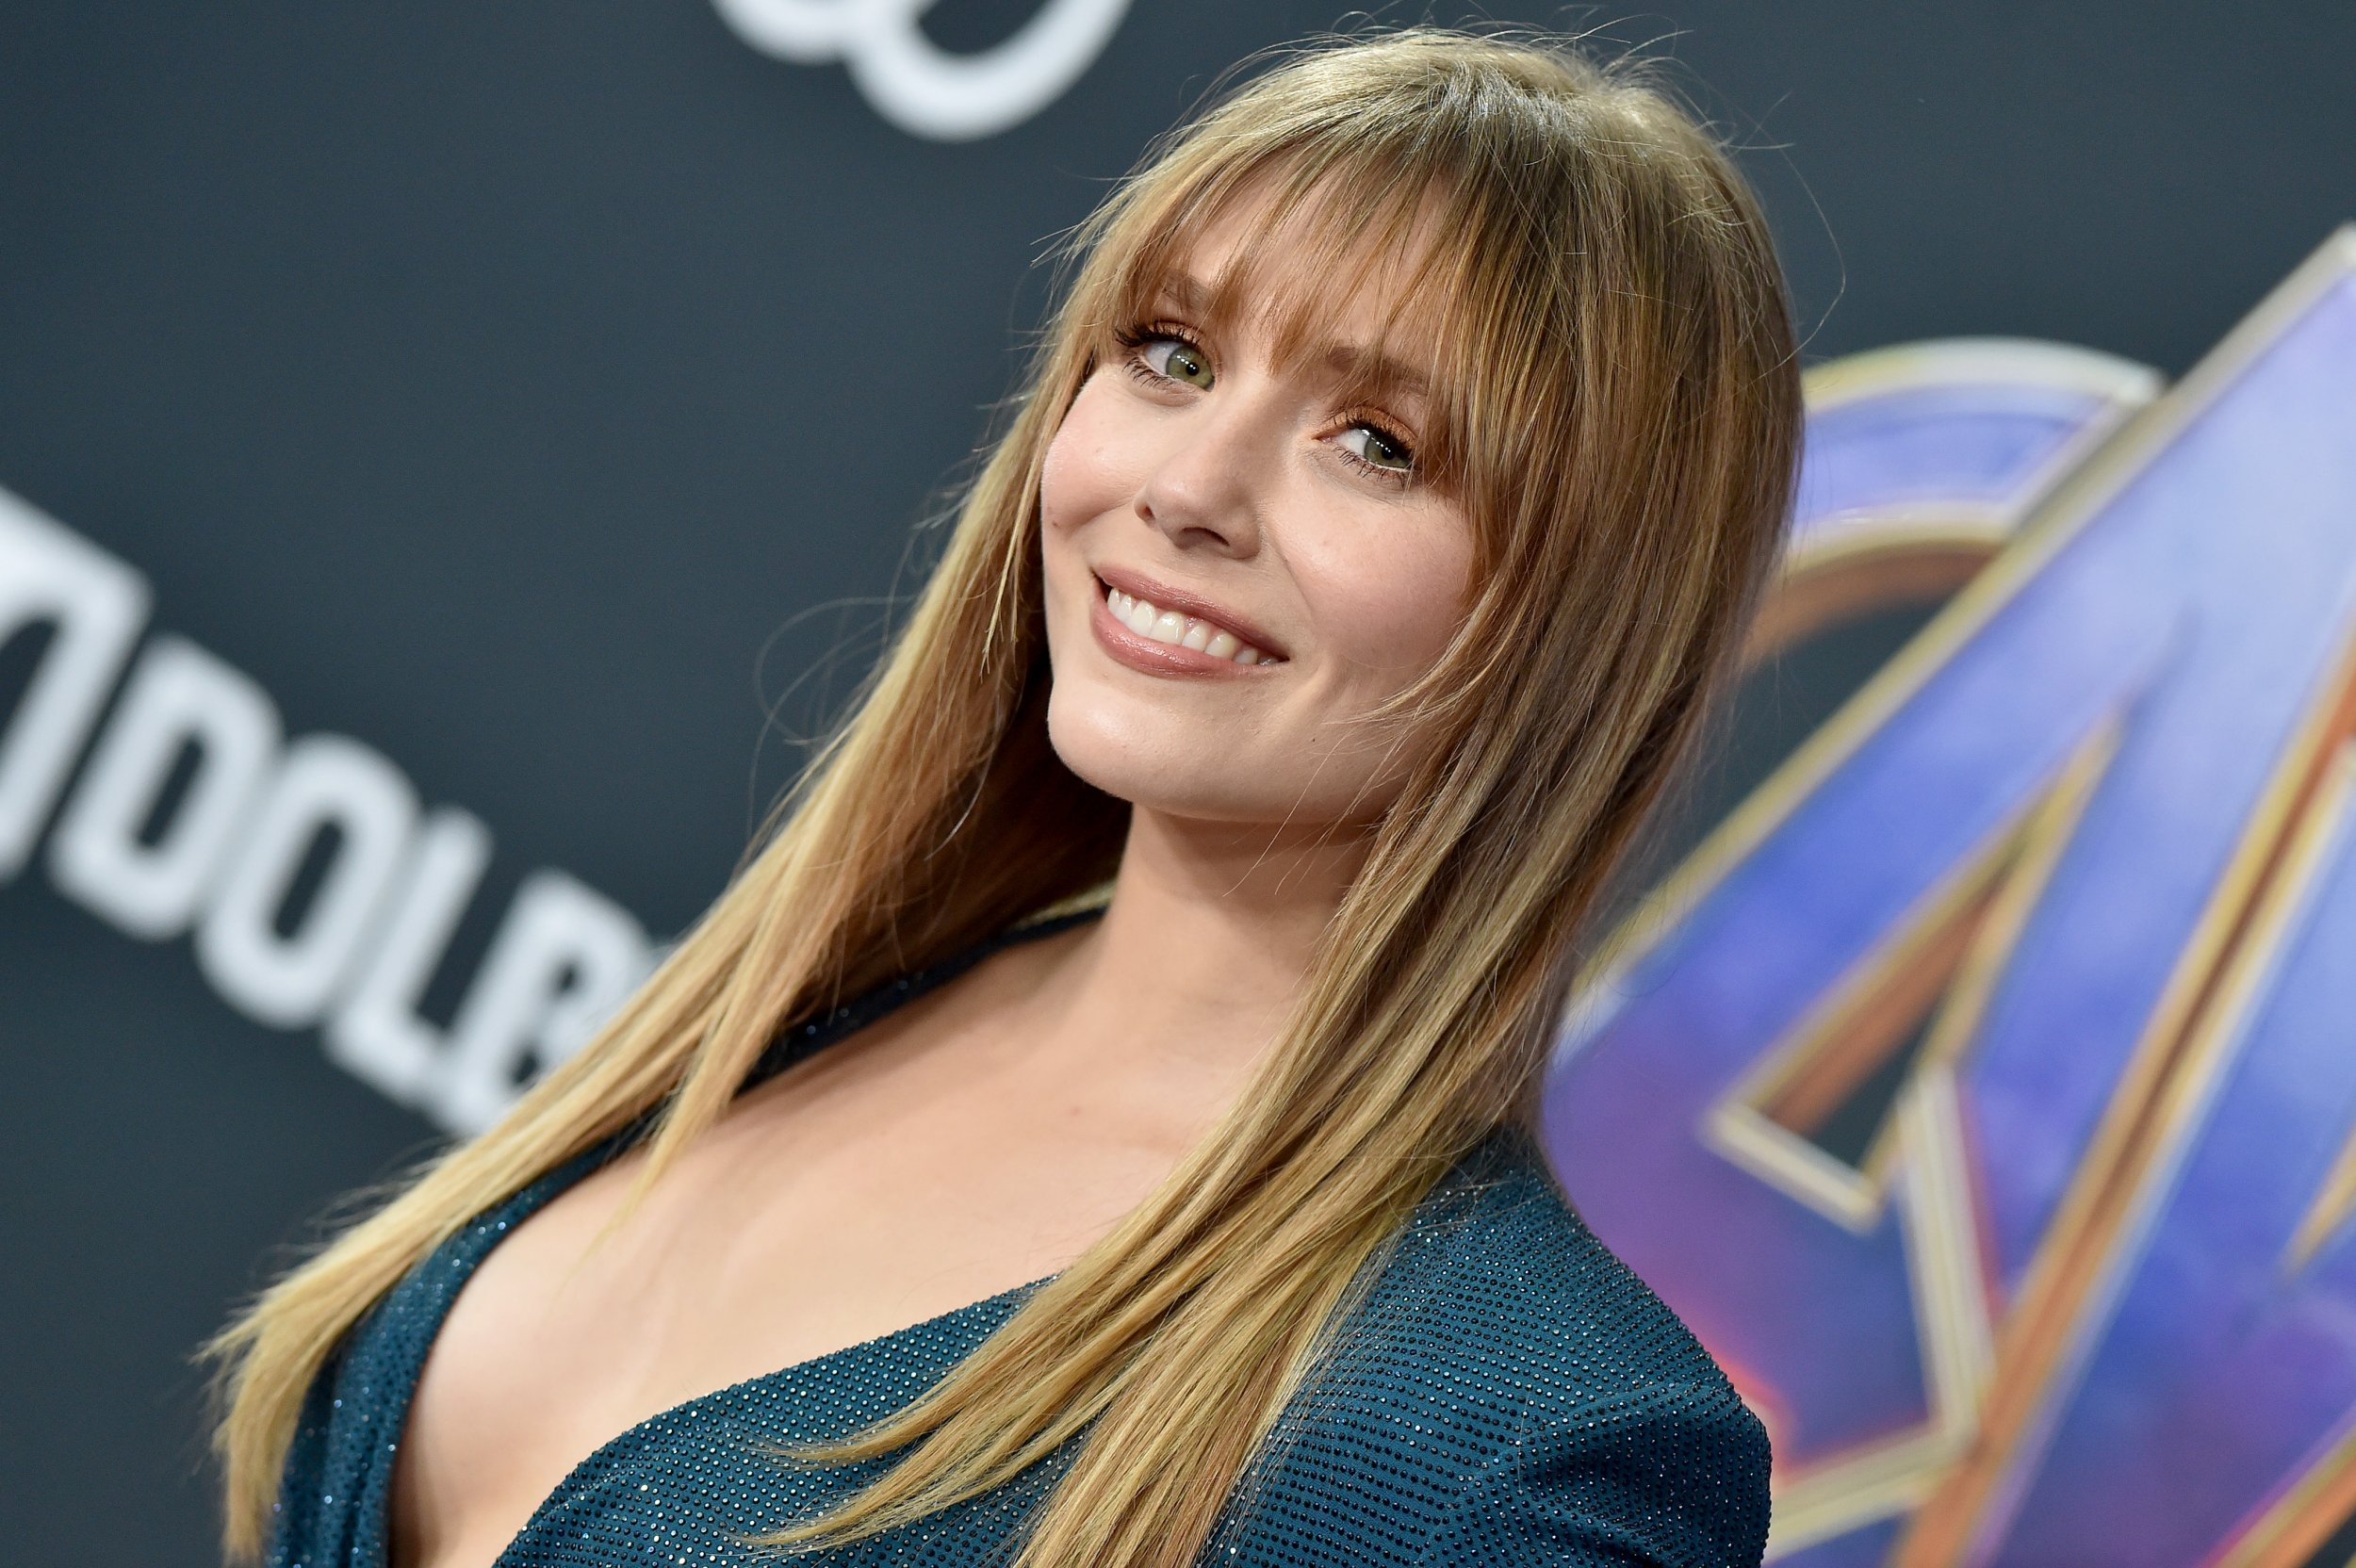 Elizabeth Olsen on 'Never' Being Asked by Marvel to Lose Weight